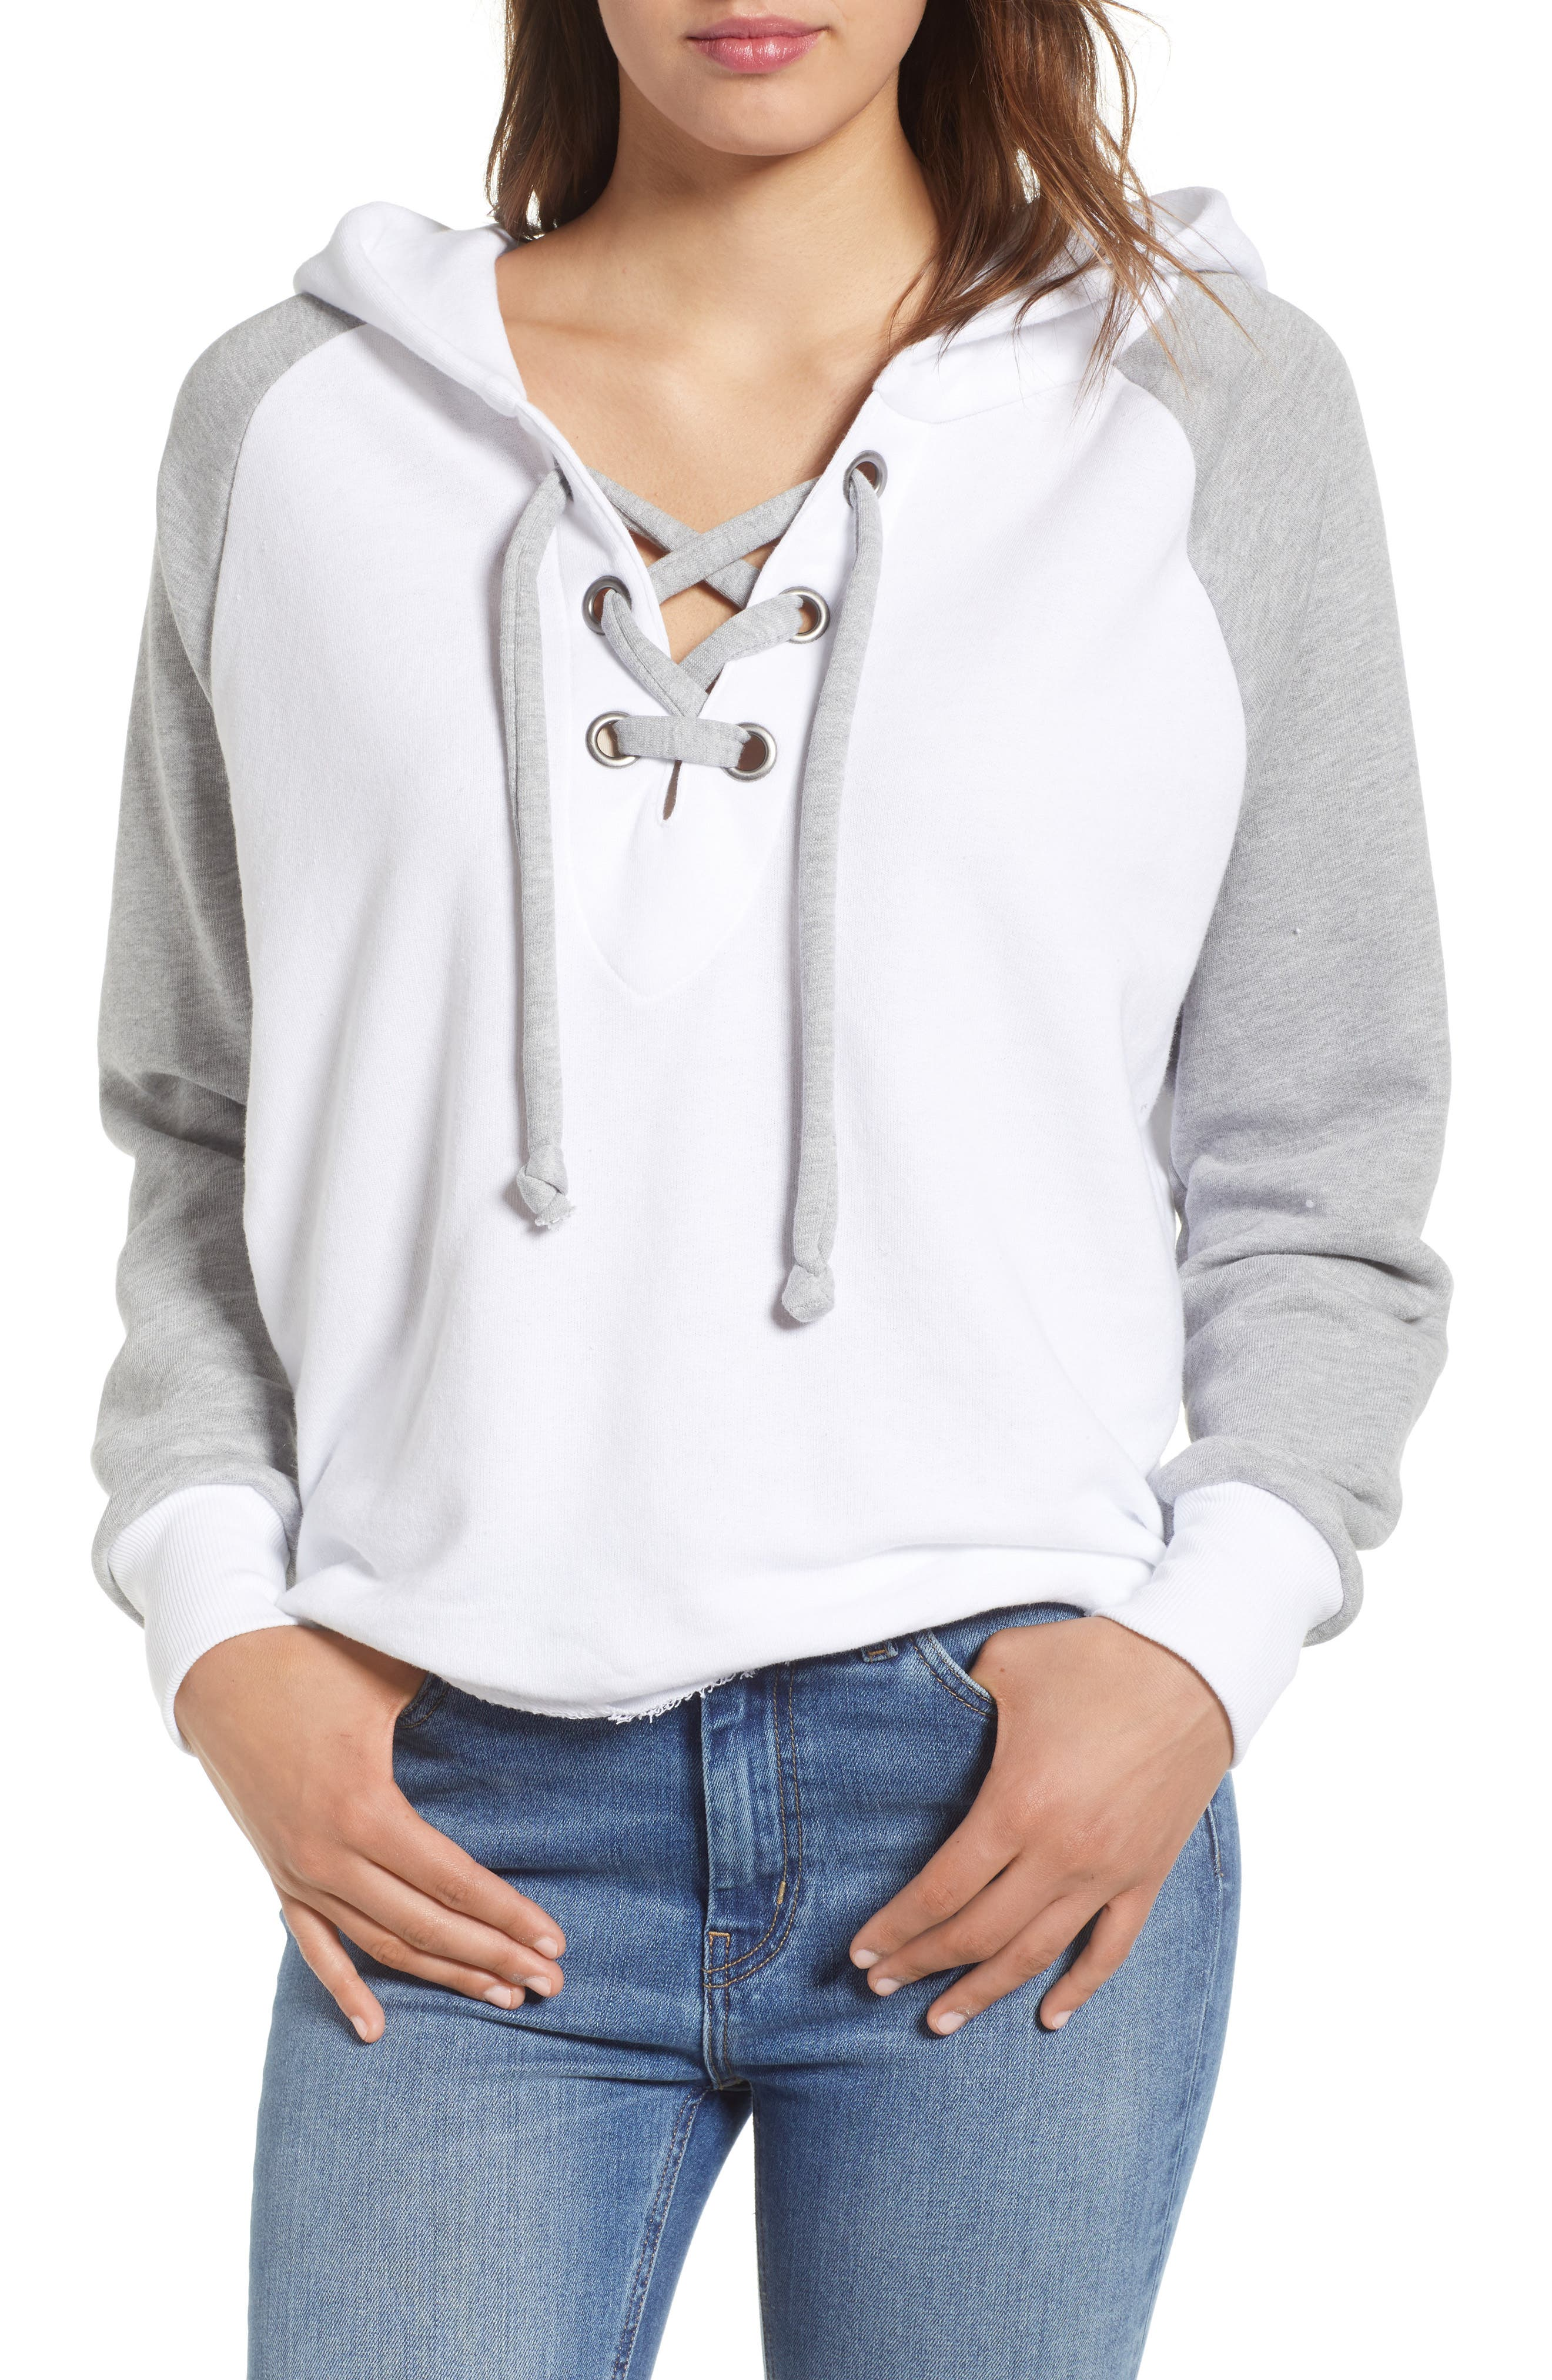 Contrast Hutton Hoodie,                             Main thumbnail 1, color,                             Clean White/ Heather